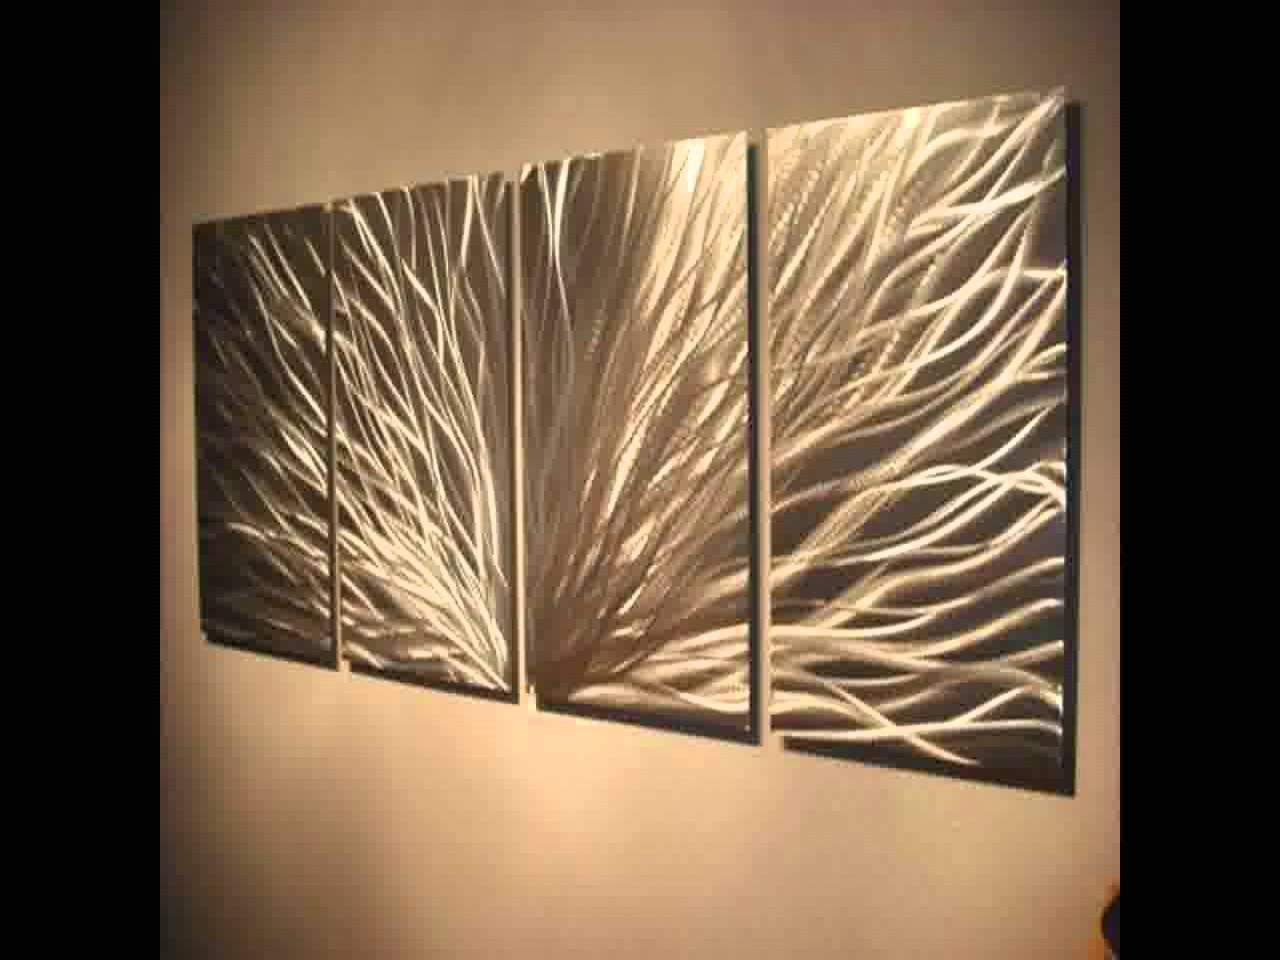 Angel Wings Wall Art Design Ideas – Youtube With Regard To Angel Wing Wall Art (Image 6 of 20)